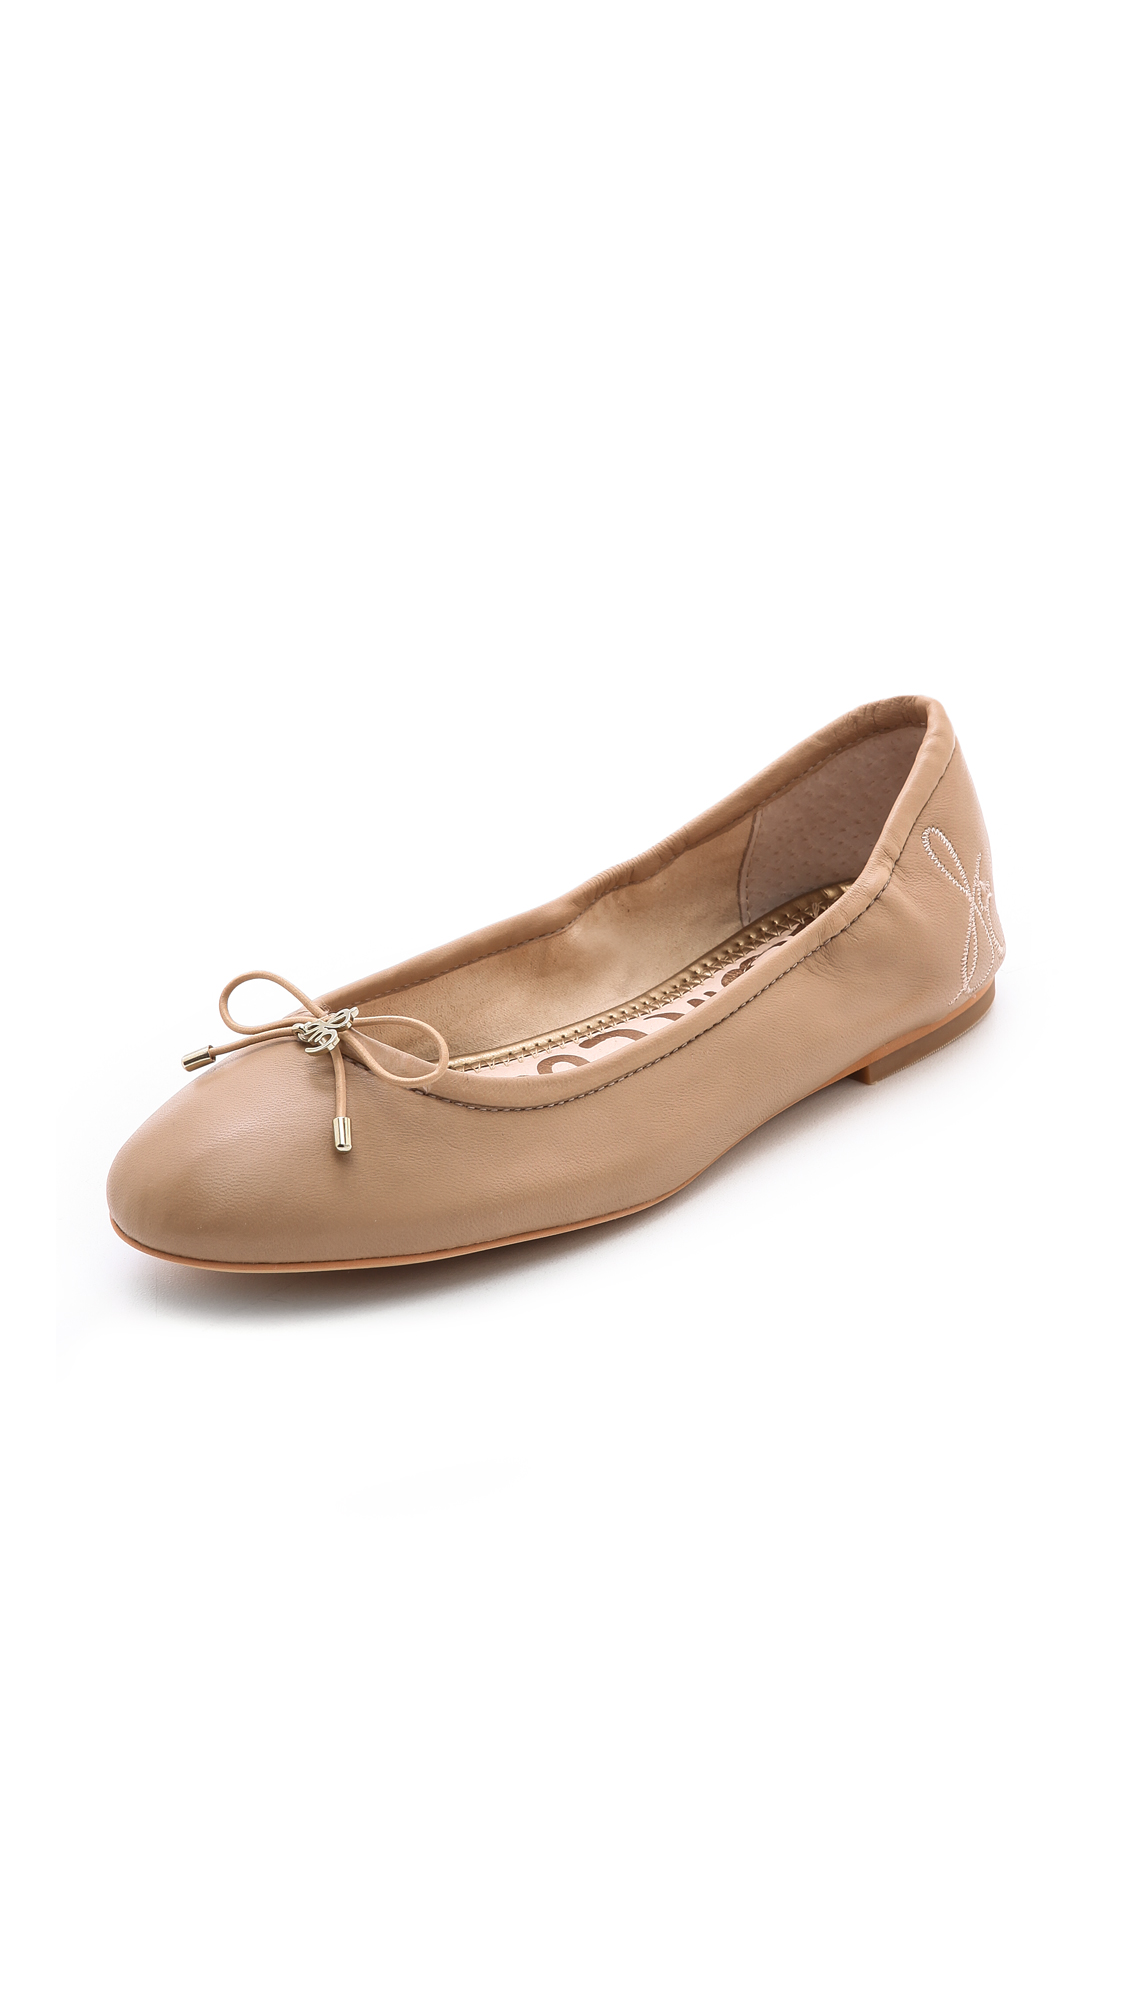 Felicia Bow-Detail Leather Ballet Flats in Classic Nude